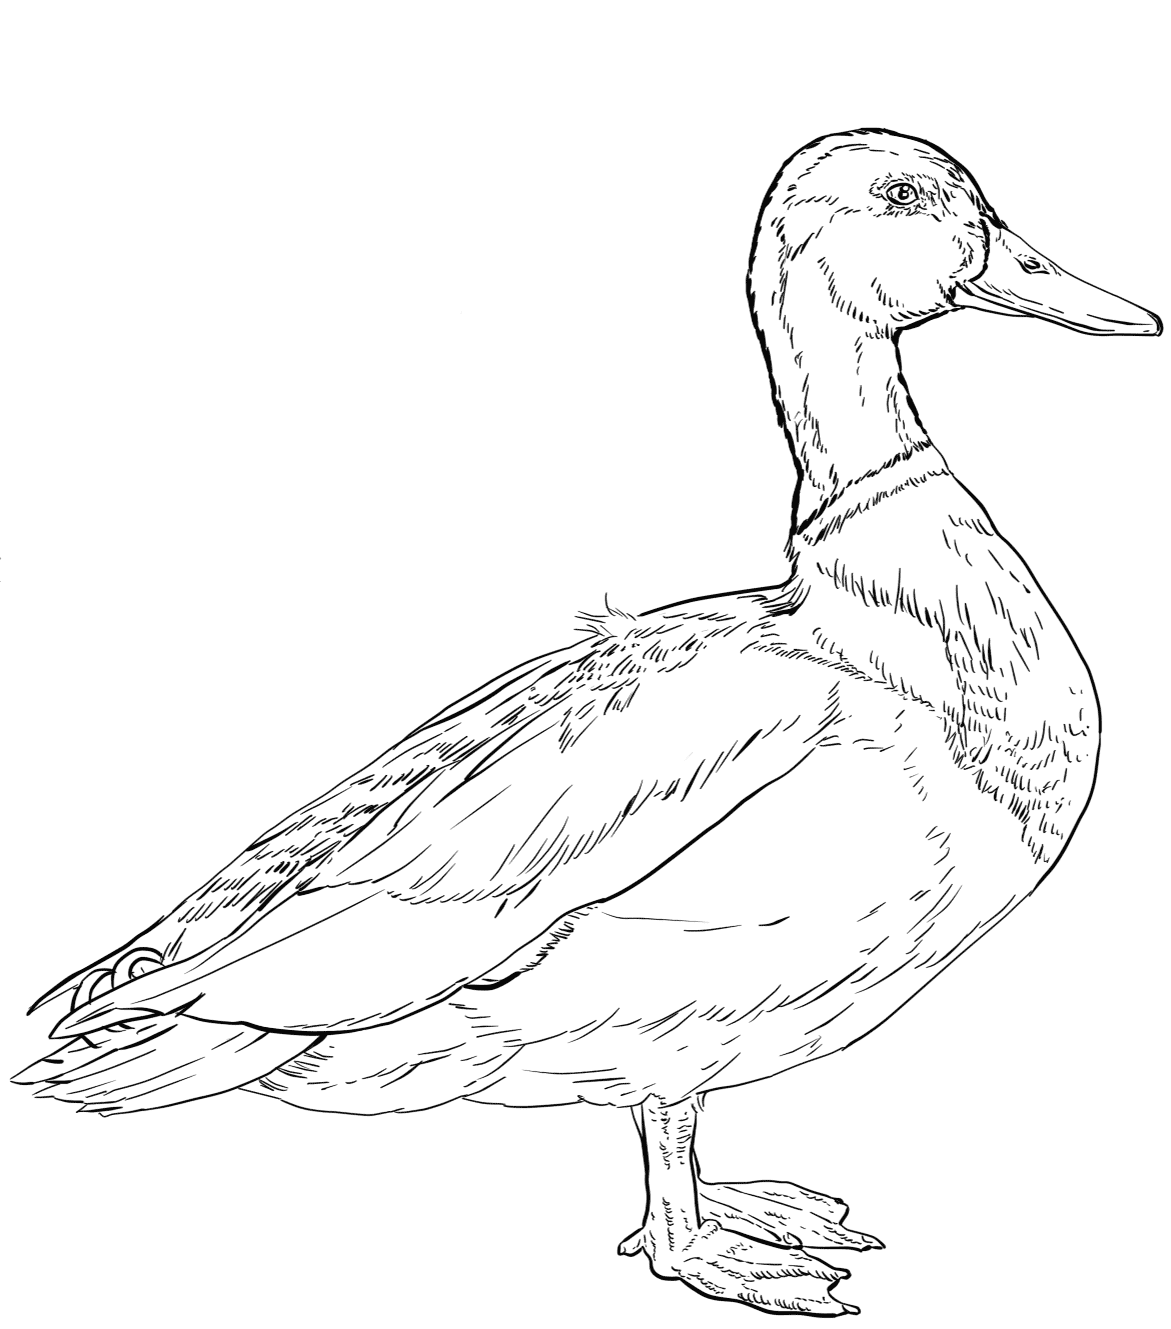 Male Mallard duck has curly tail Coloring Pages